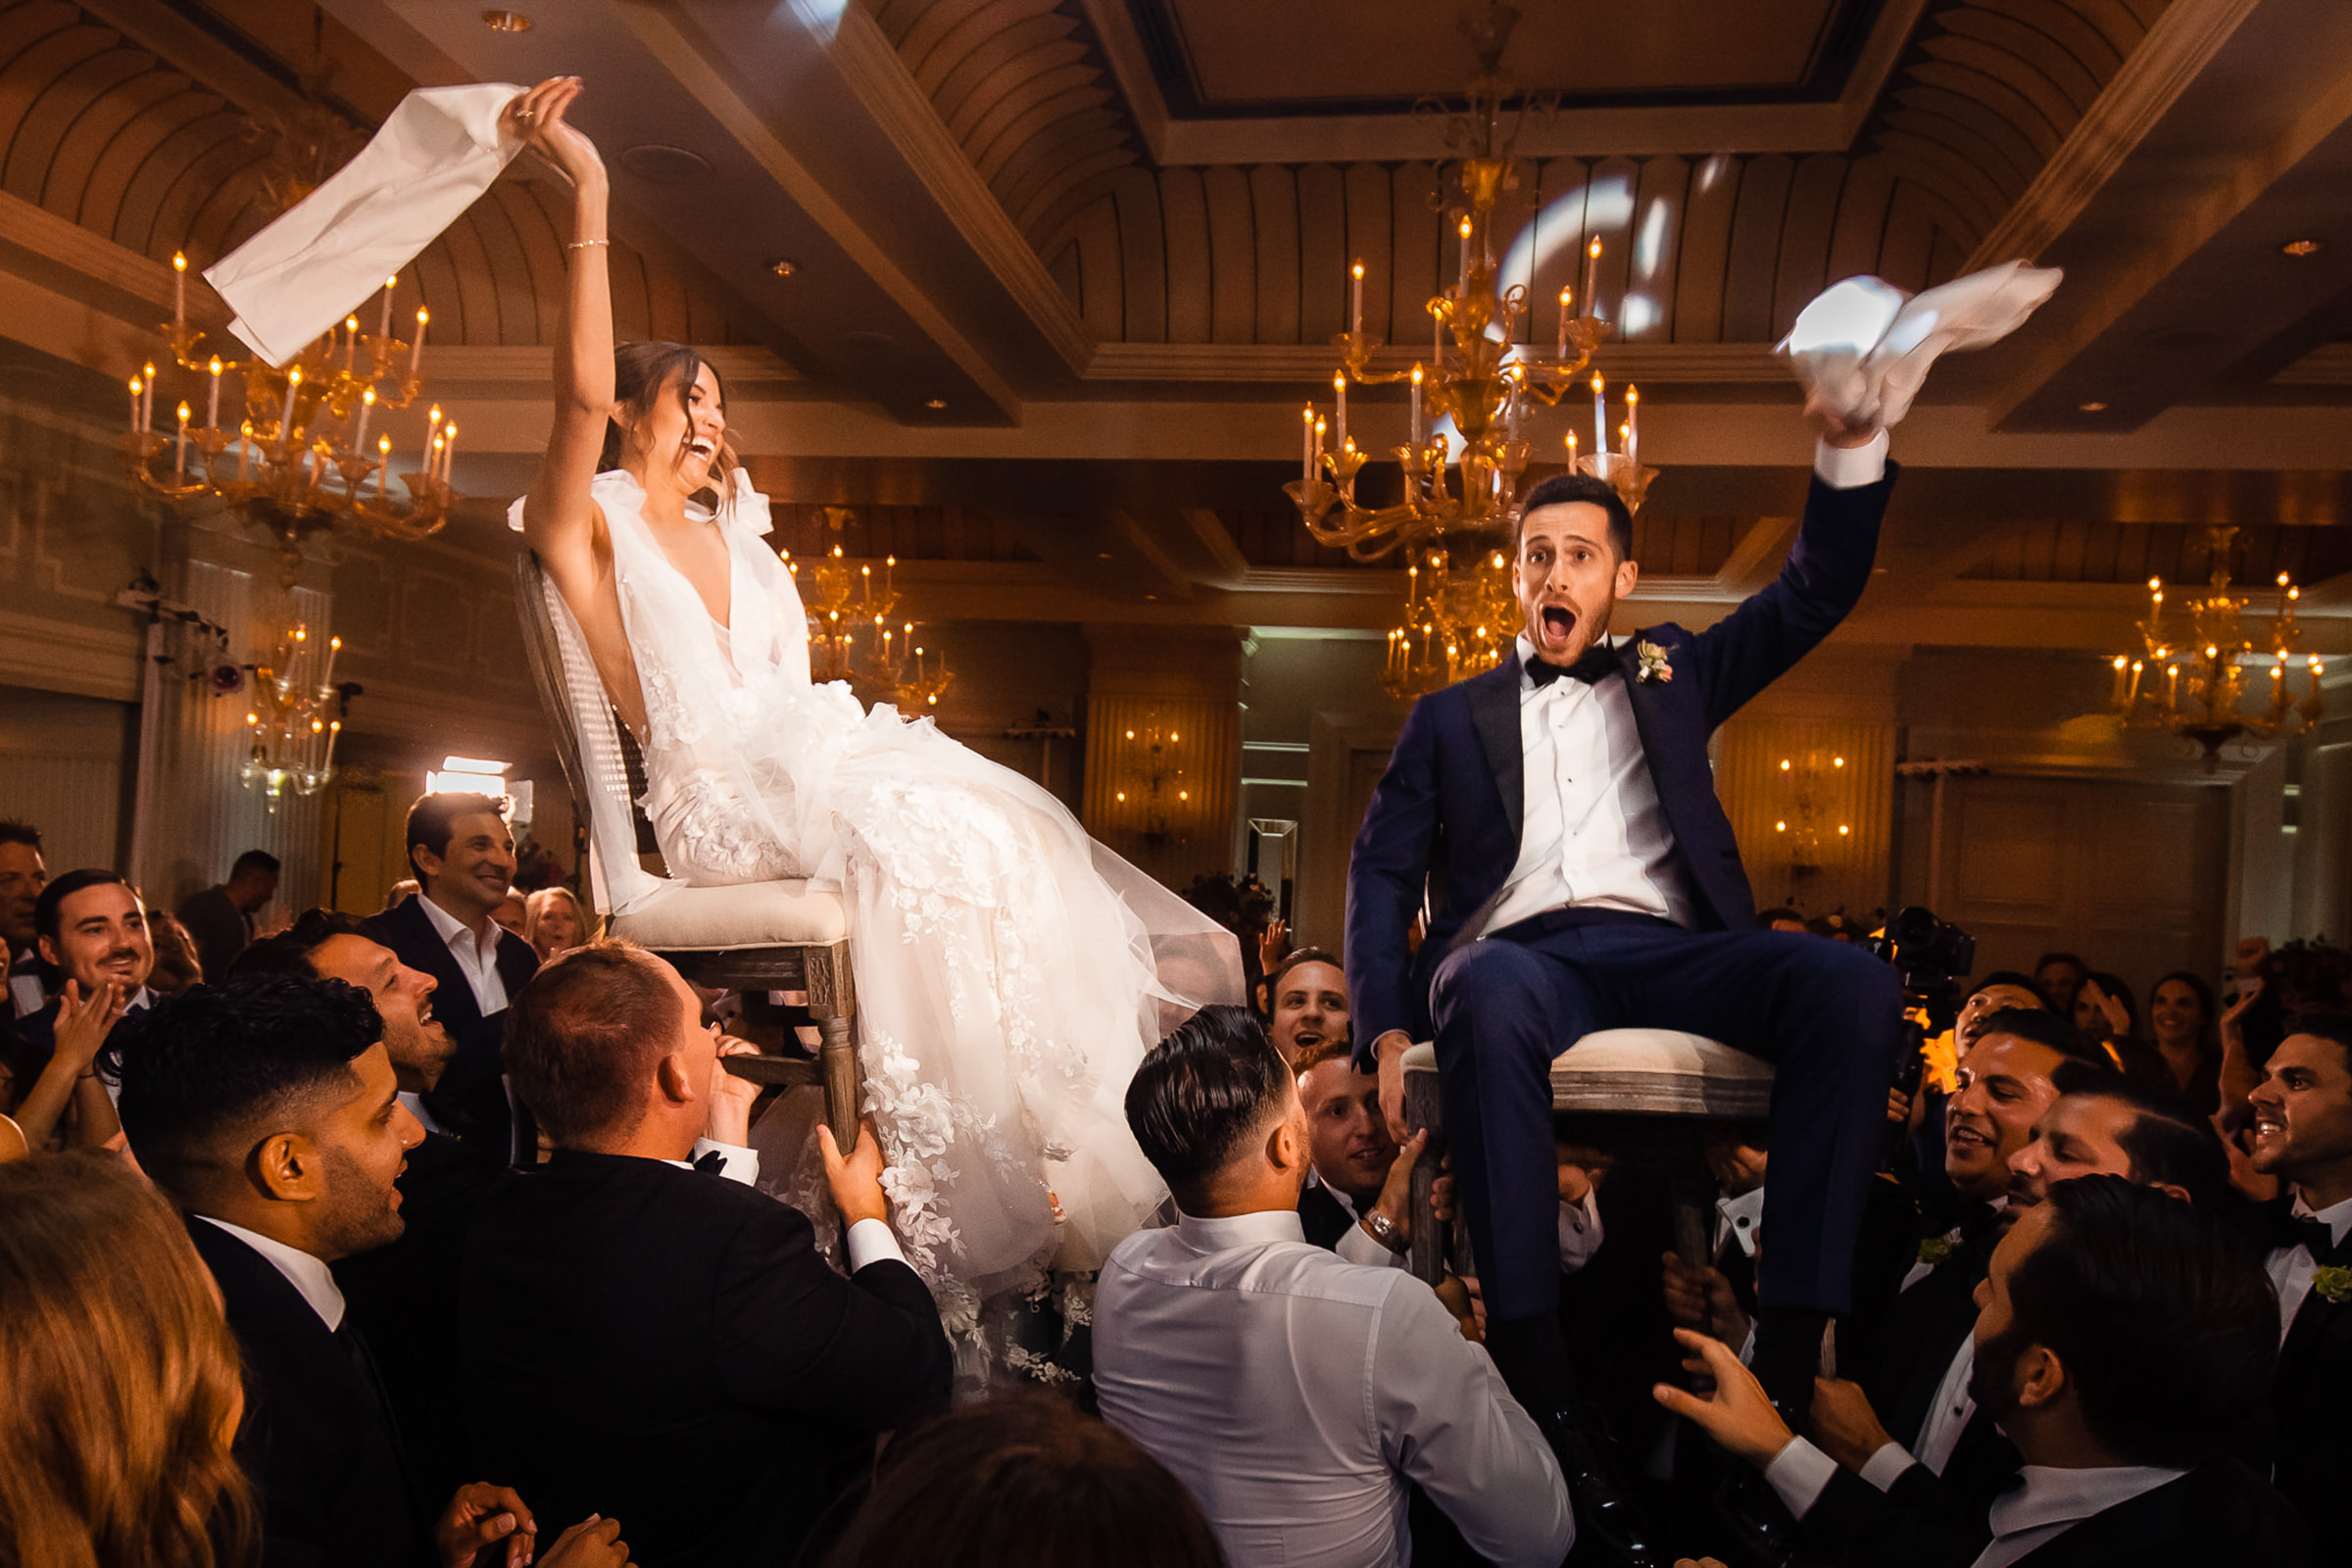 Bride and groom held aloft on chairs - photo by M. Hart - Los Angeles photographer